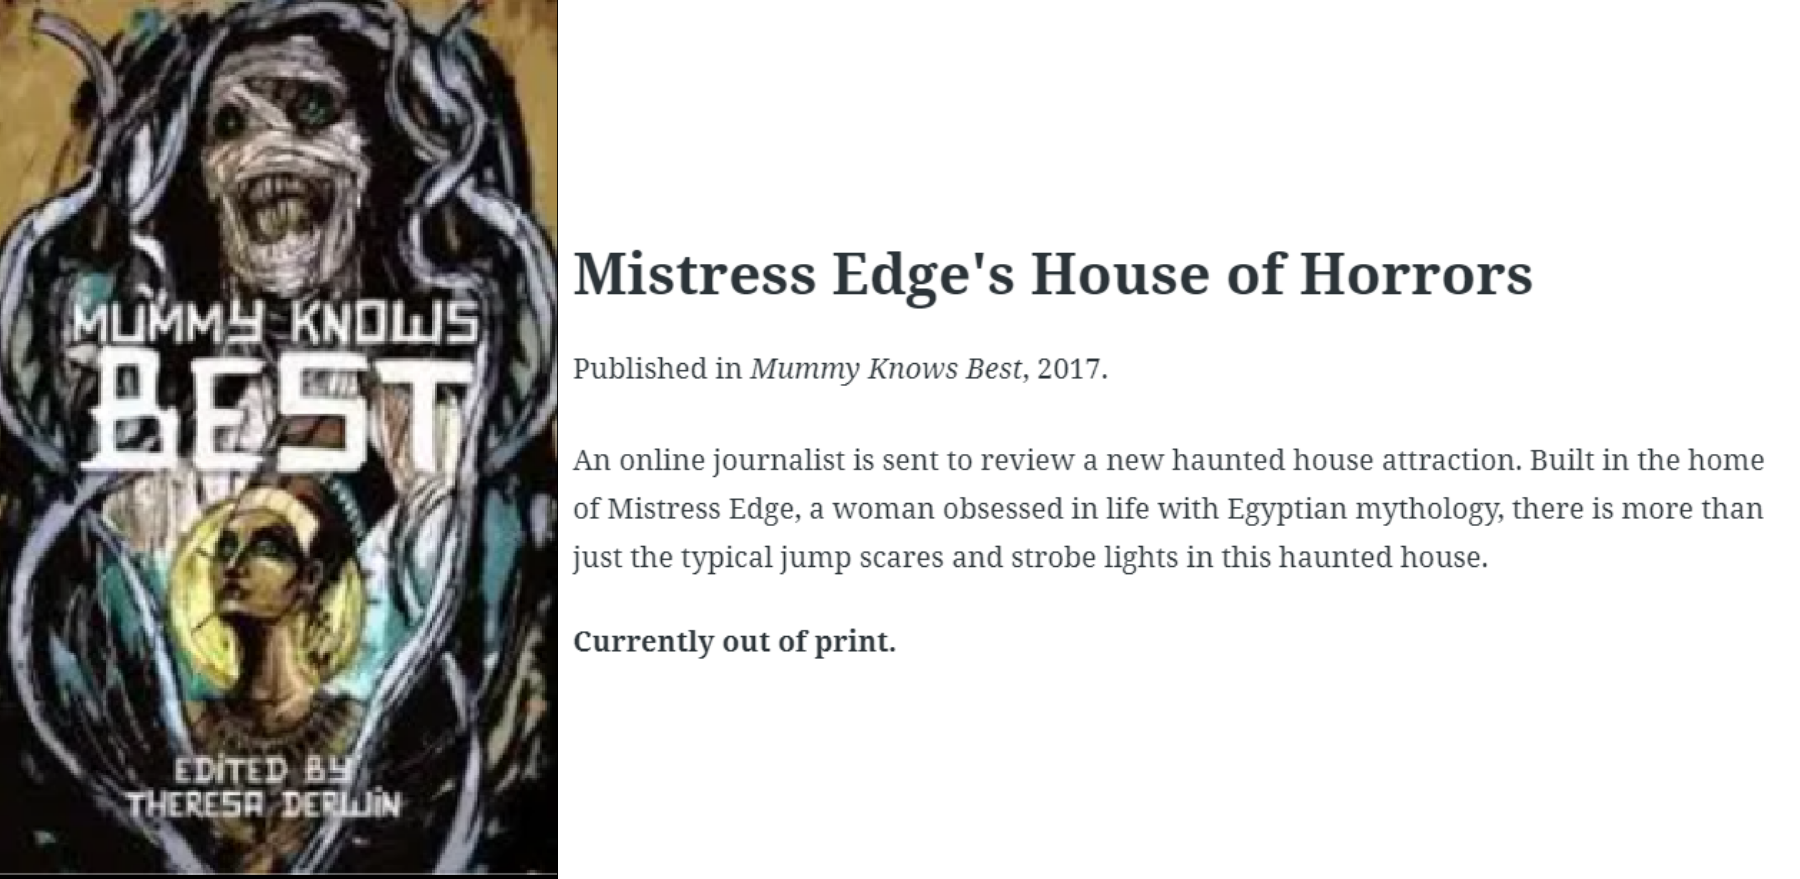 mistress edge's house of horrors